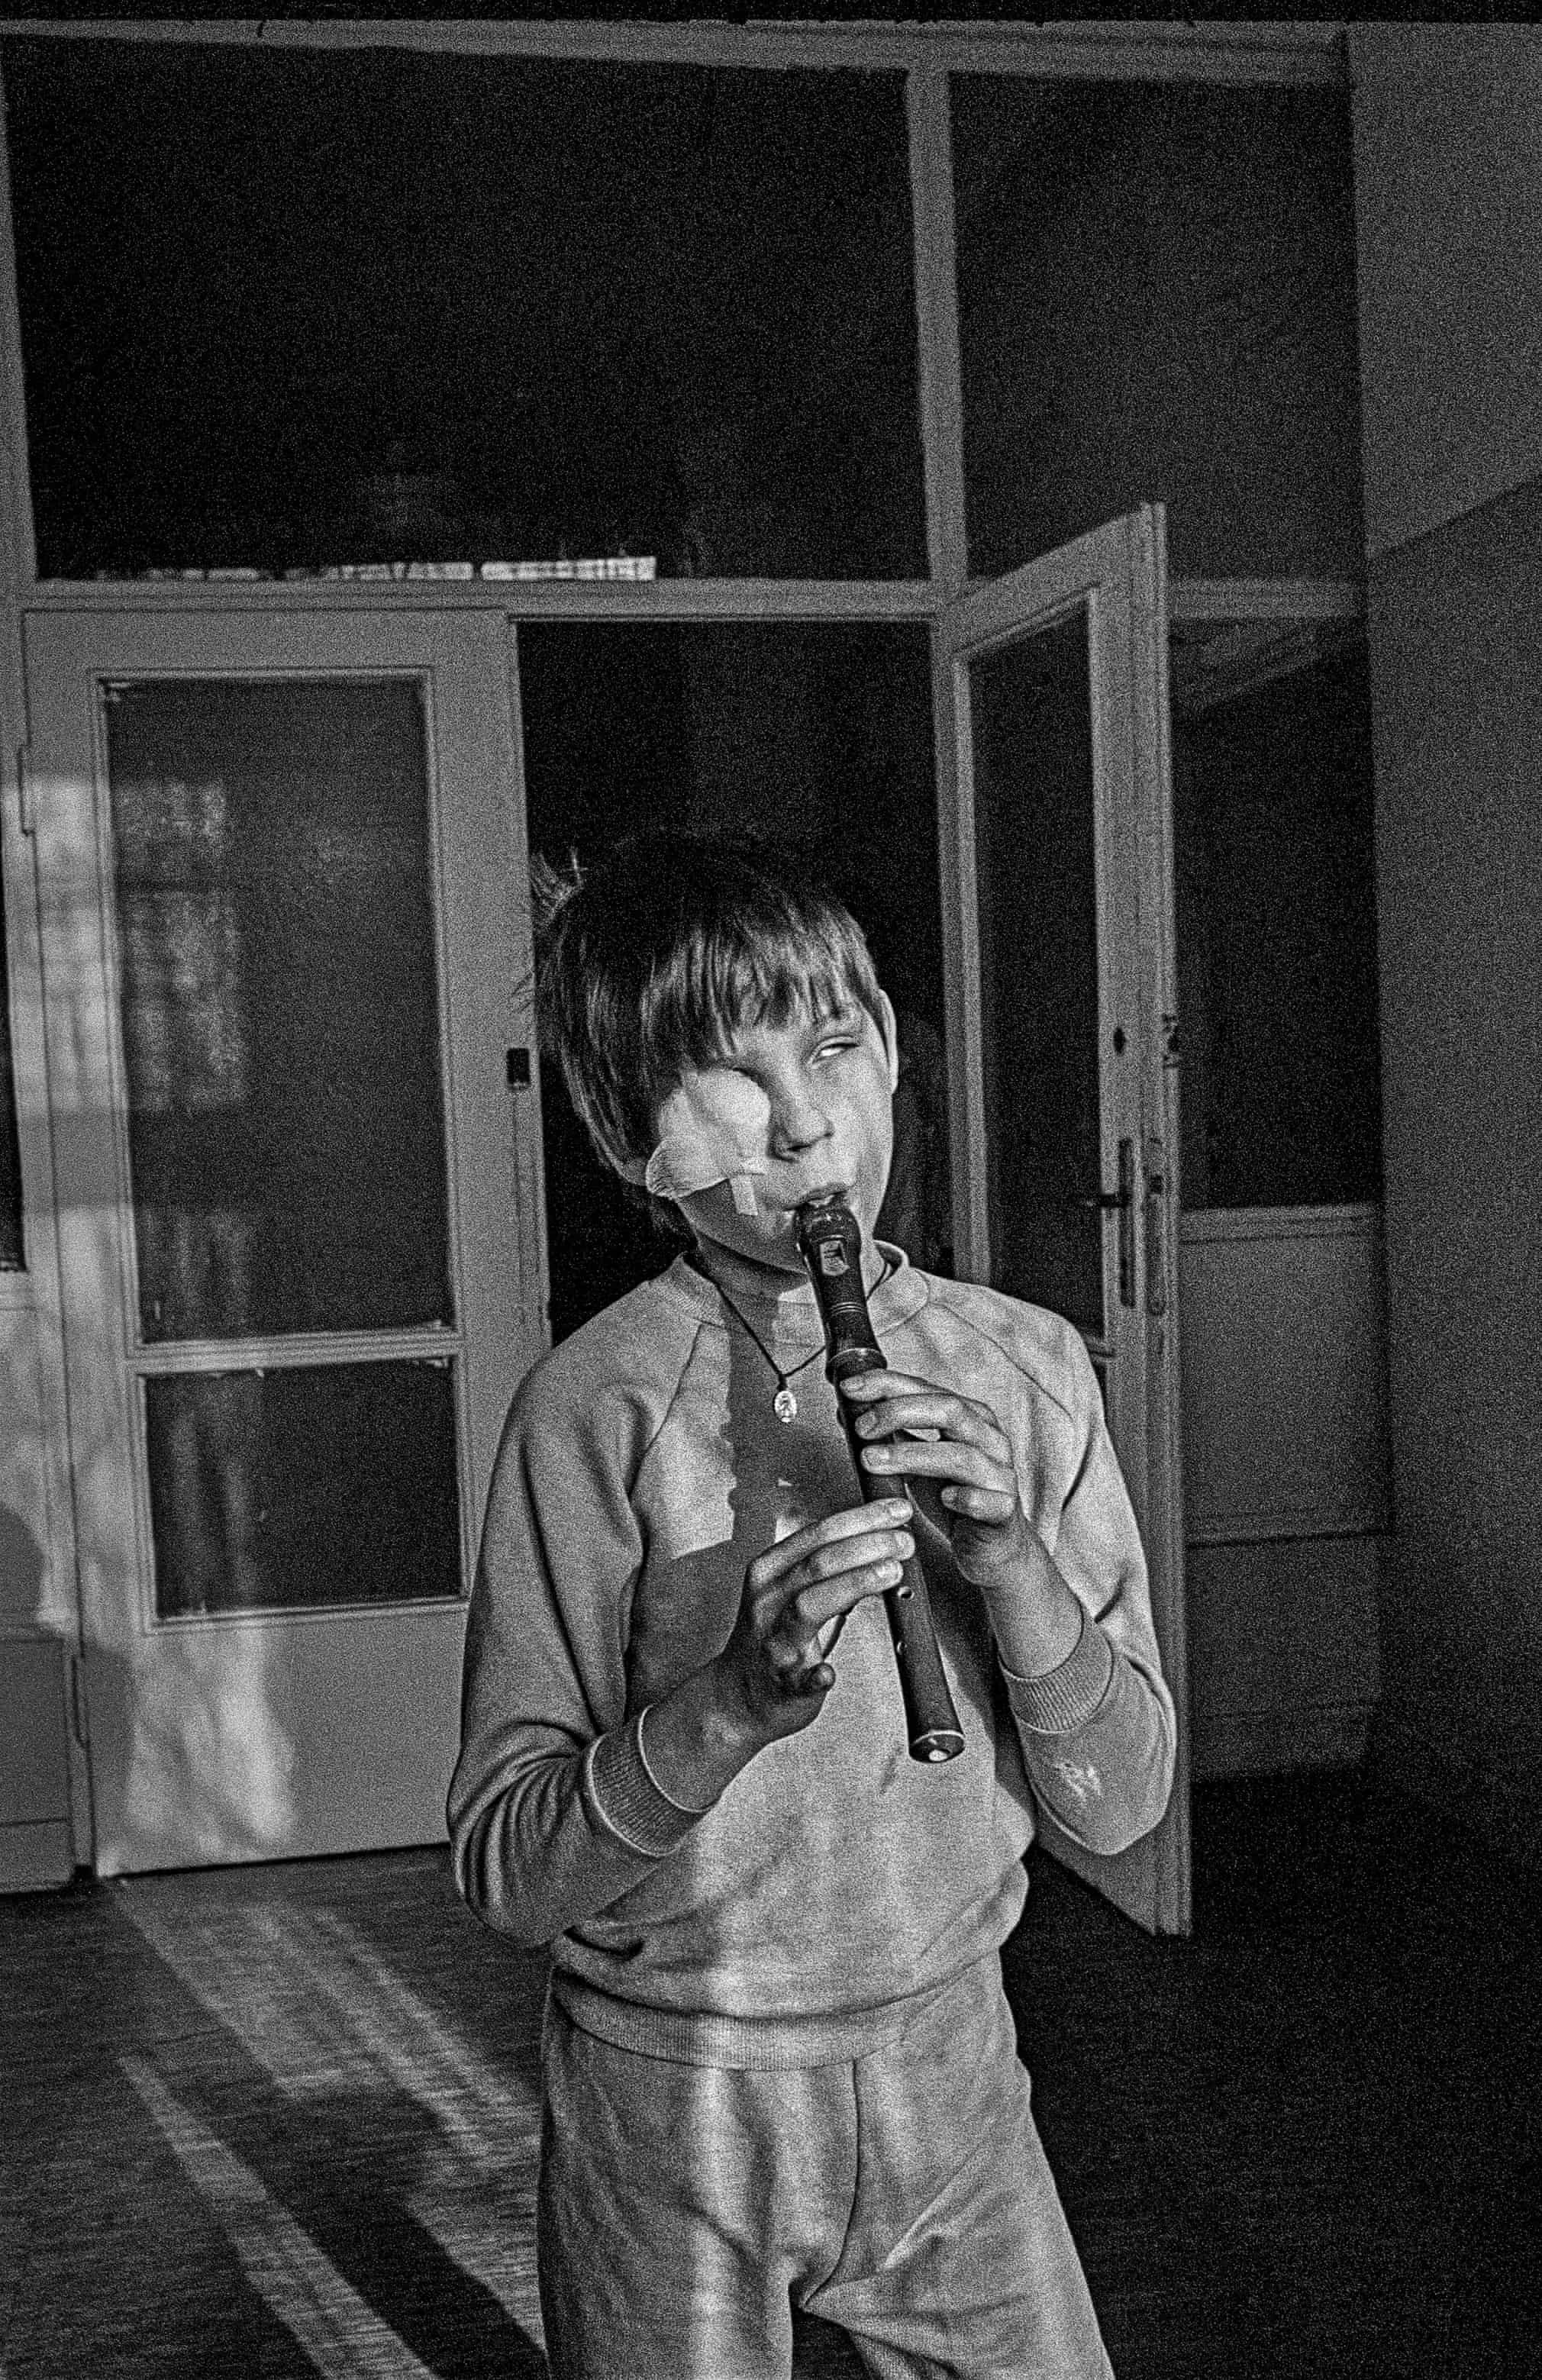 A young patient in the Ophthalmology unit of a hospital. Warsaw, Poland 1986